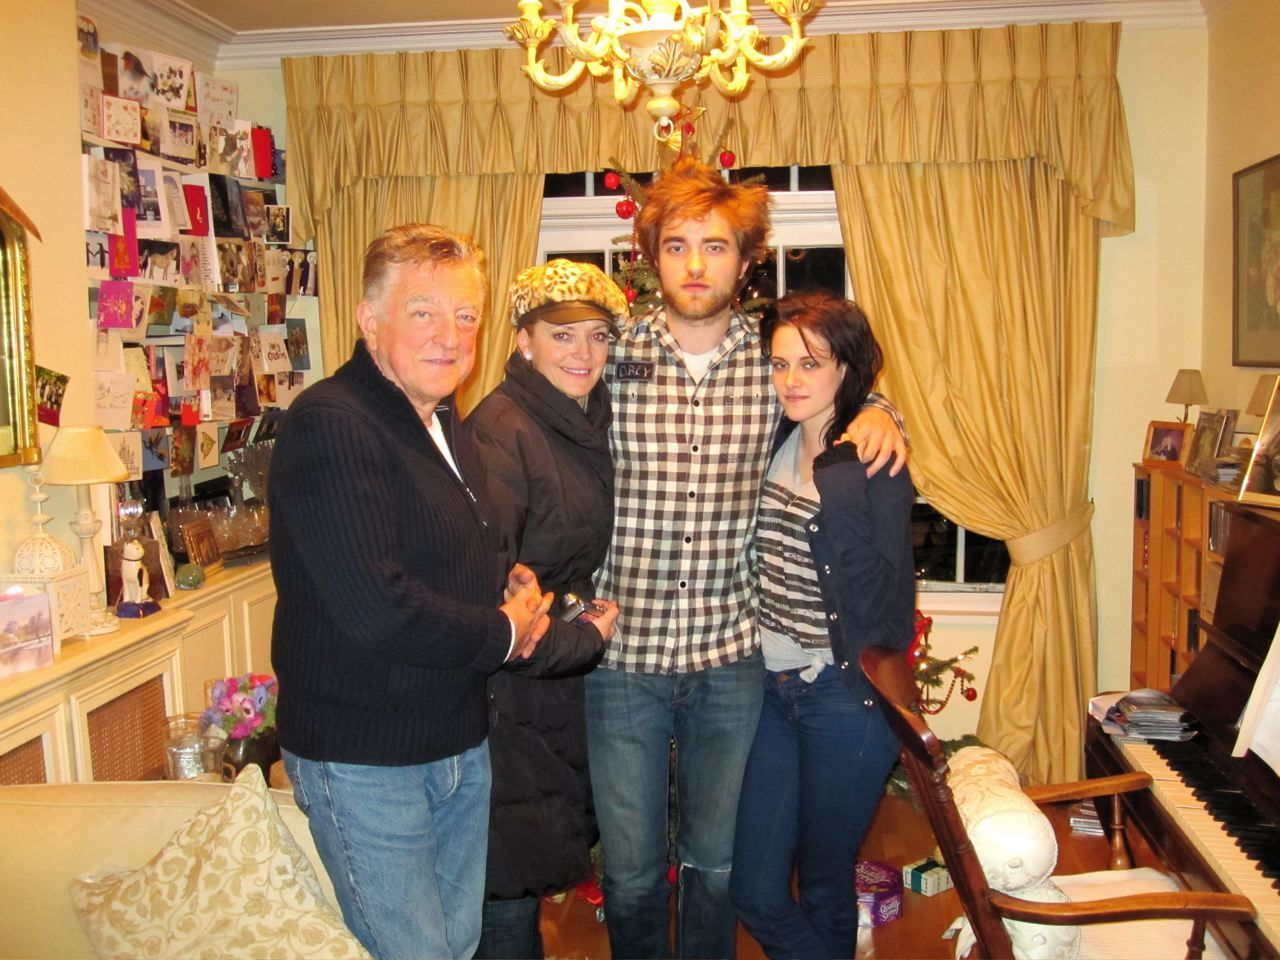 New/Old foto of Rob and Kristen at last year's christmas at london